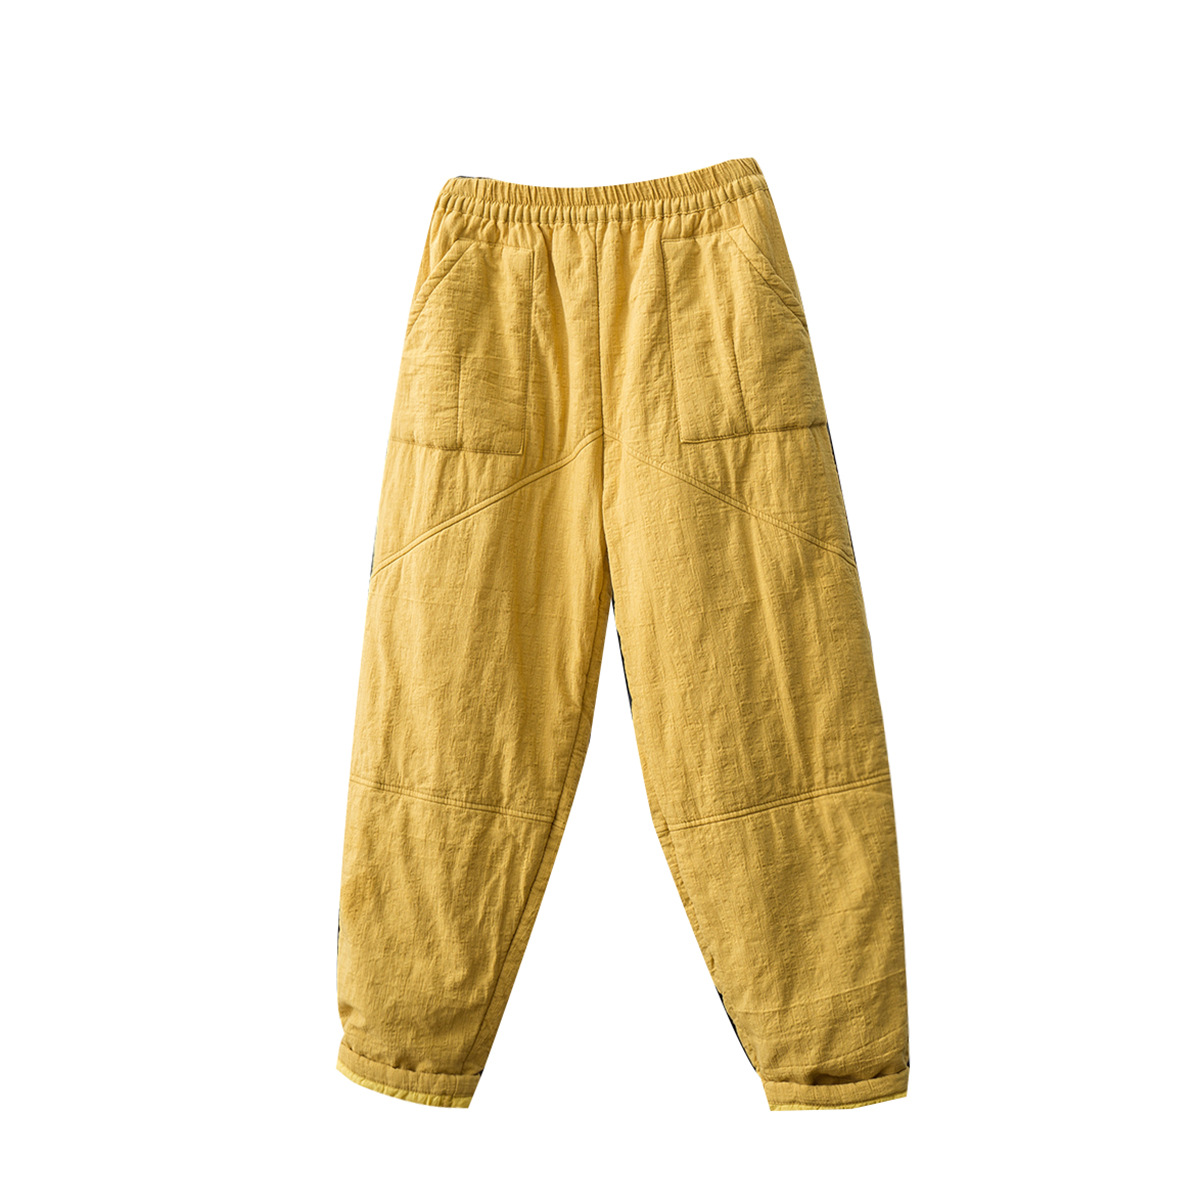 Winter New Cotton Linen Pants Elastic Waist Quilted Padded Harem Pants Casual Pants Feet Pants